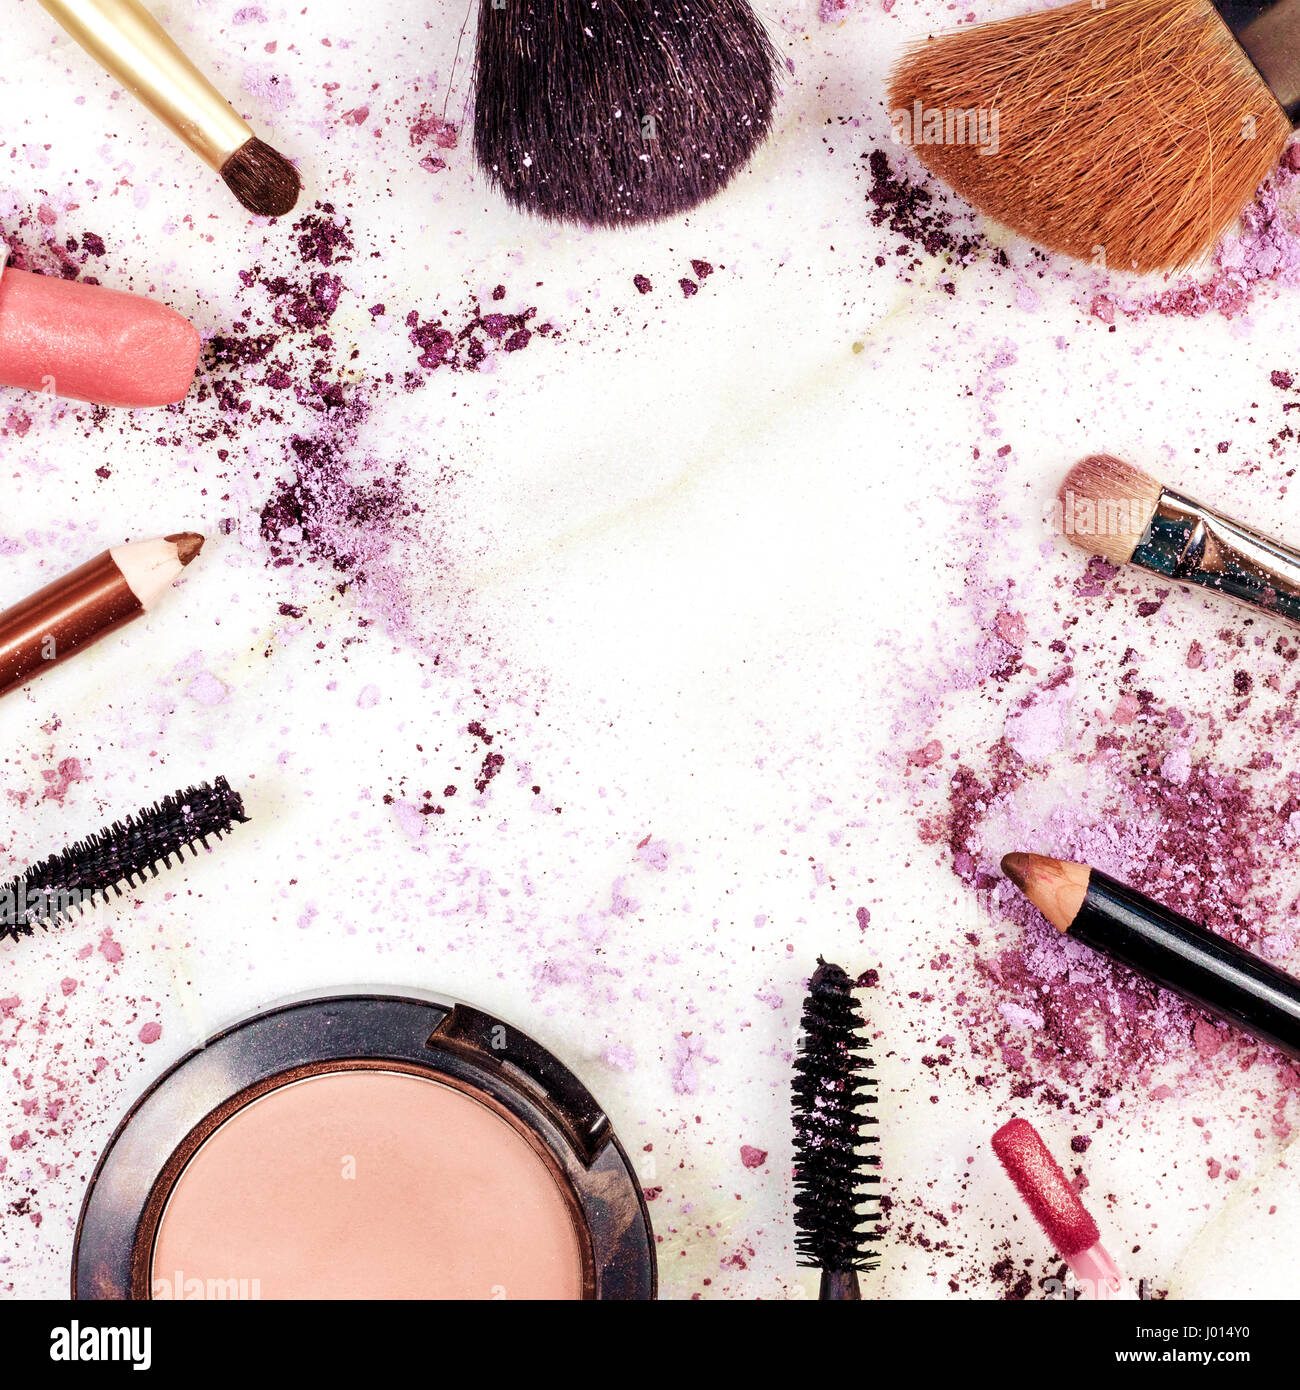 Makeup brushes, pencil, lipstick and other objects ...